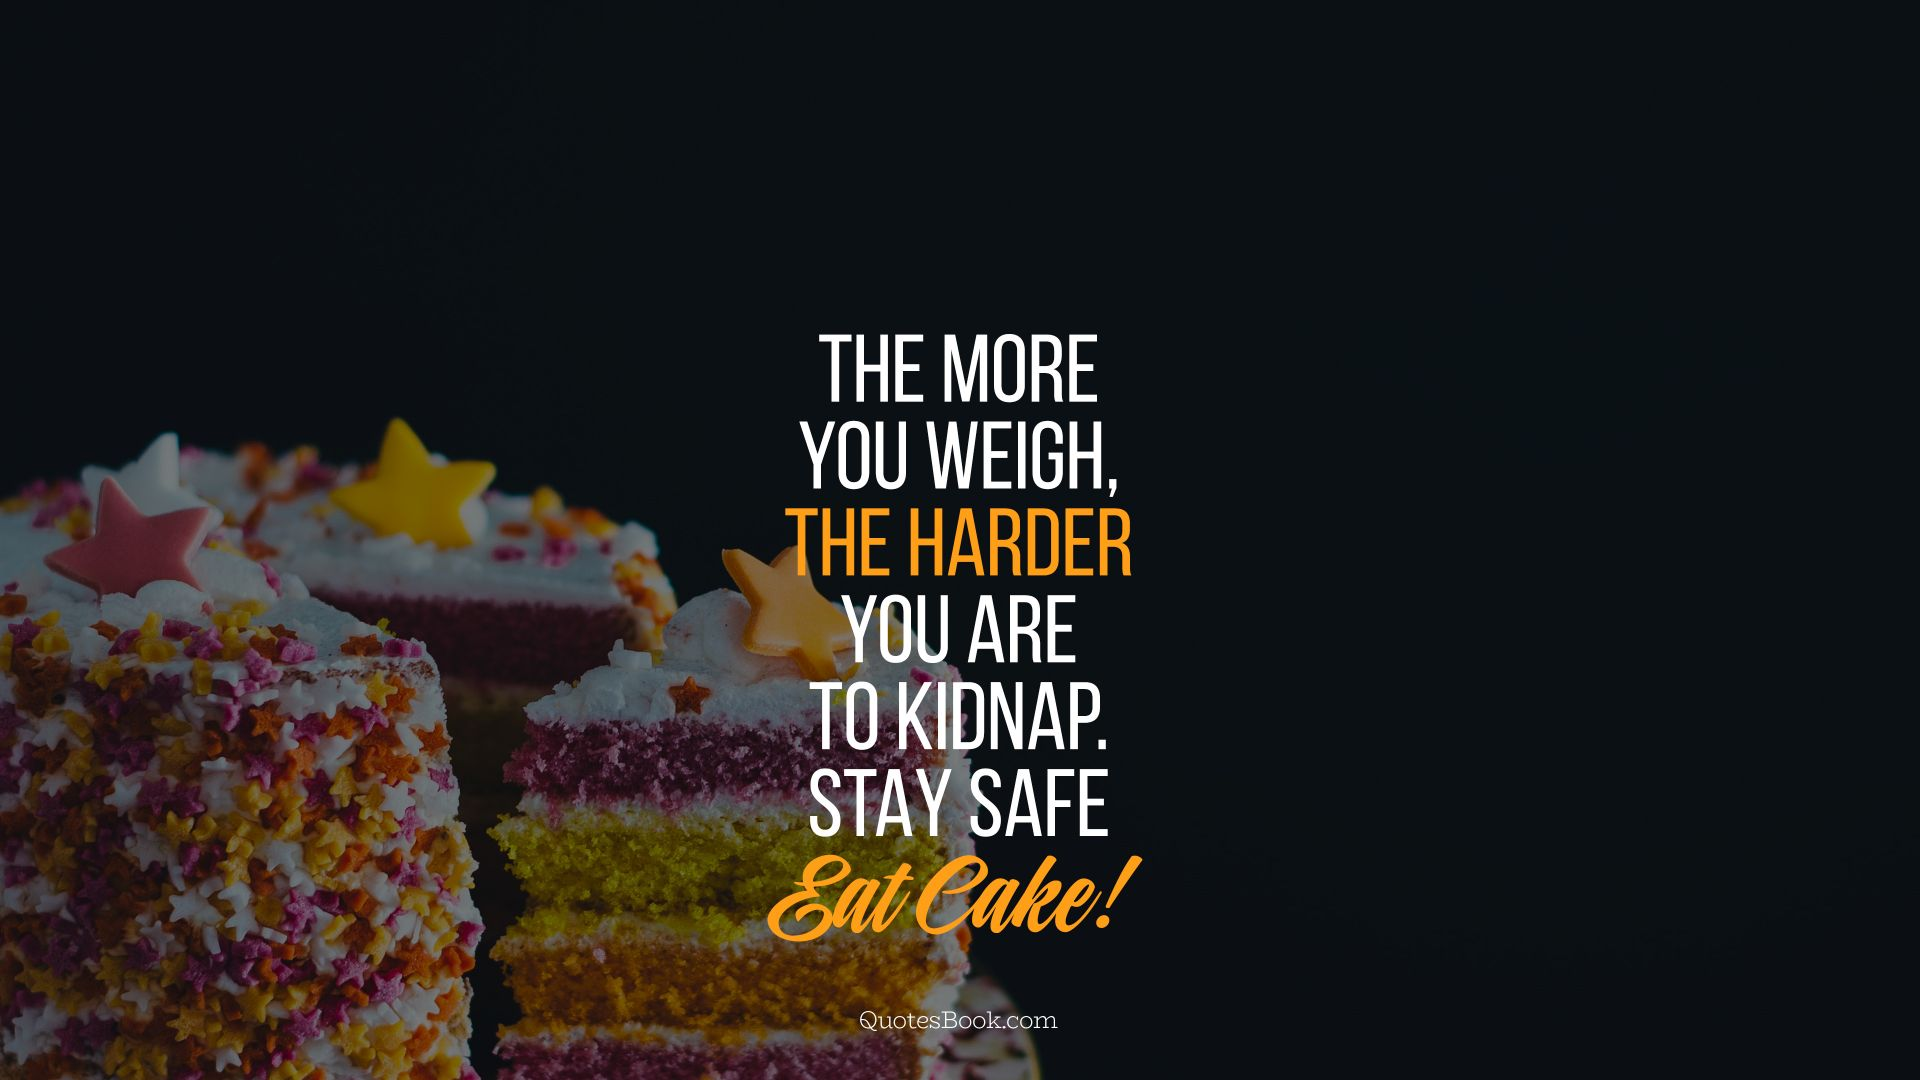 The more you weigh, the harder you are to kidnap. Stay safe eat cake!